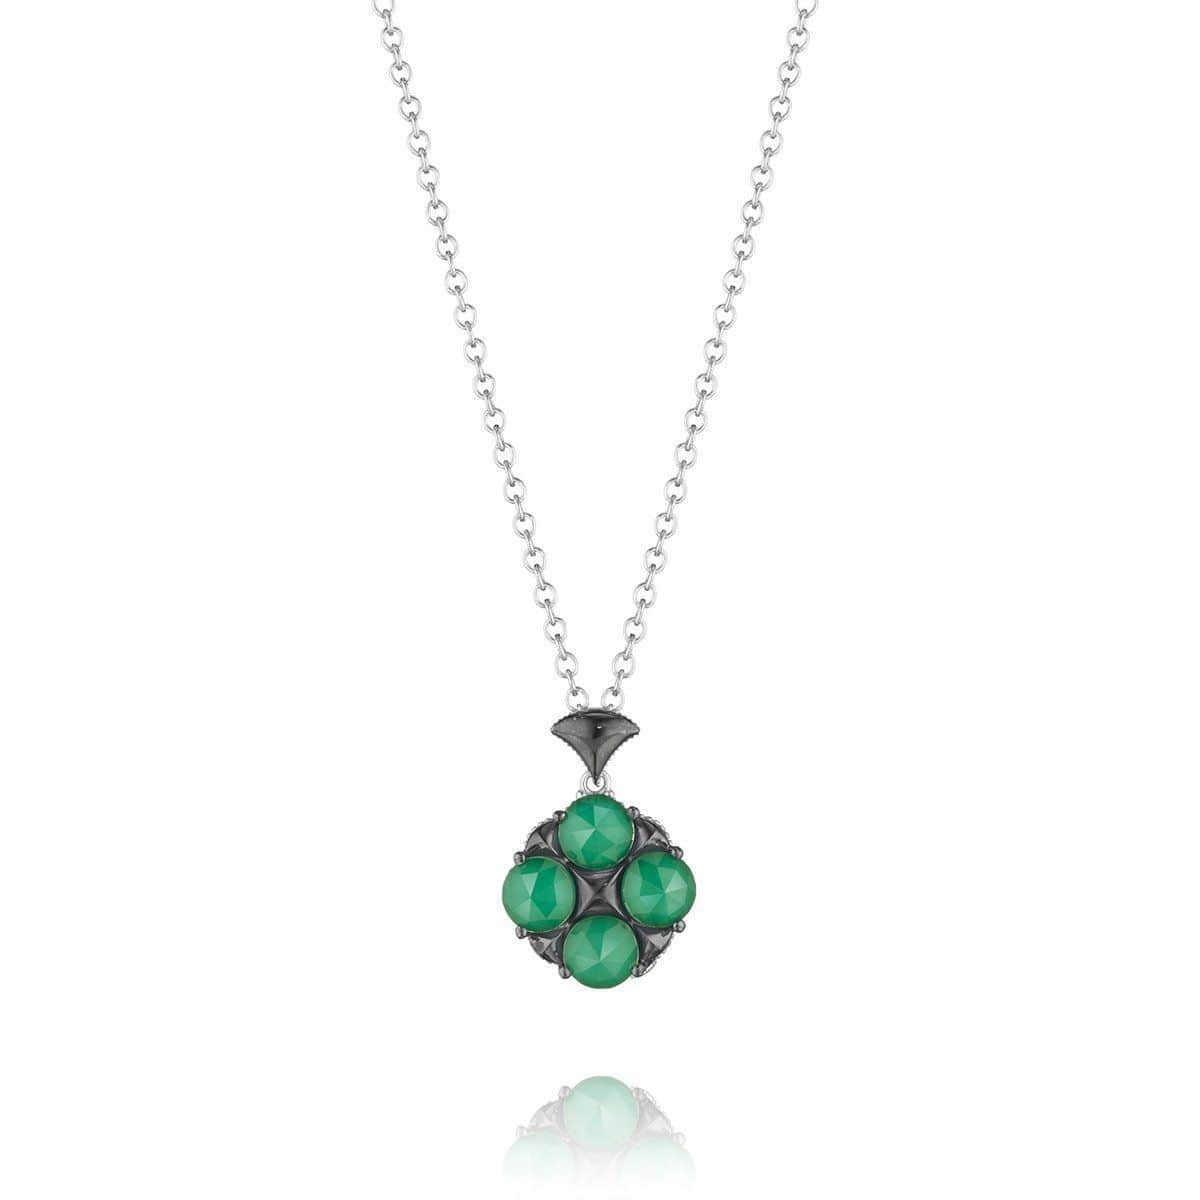 Silver Clear Quartz Over Green Onyx Chain Necklace - SN16027-Tacori-Renee Taylor Gallery